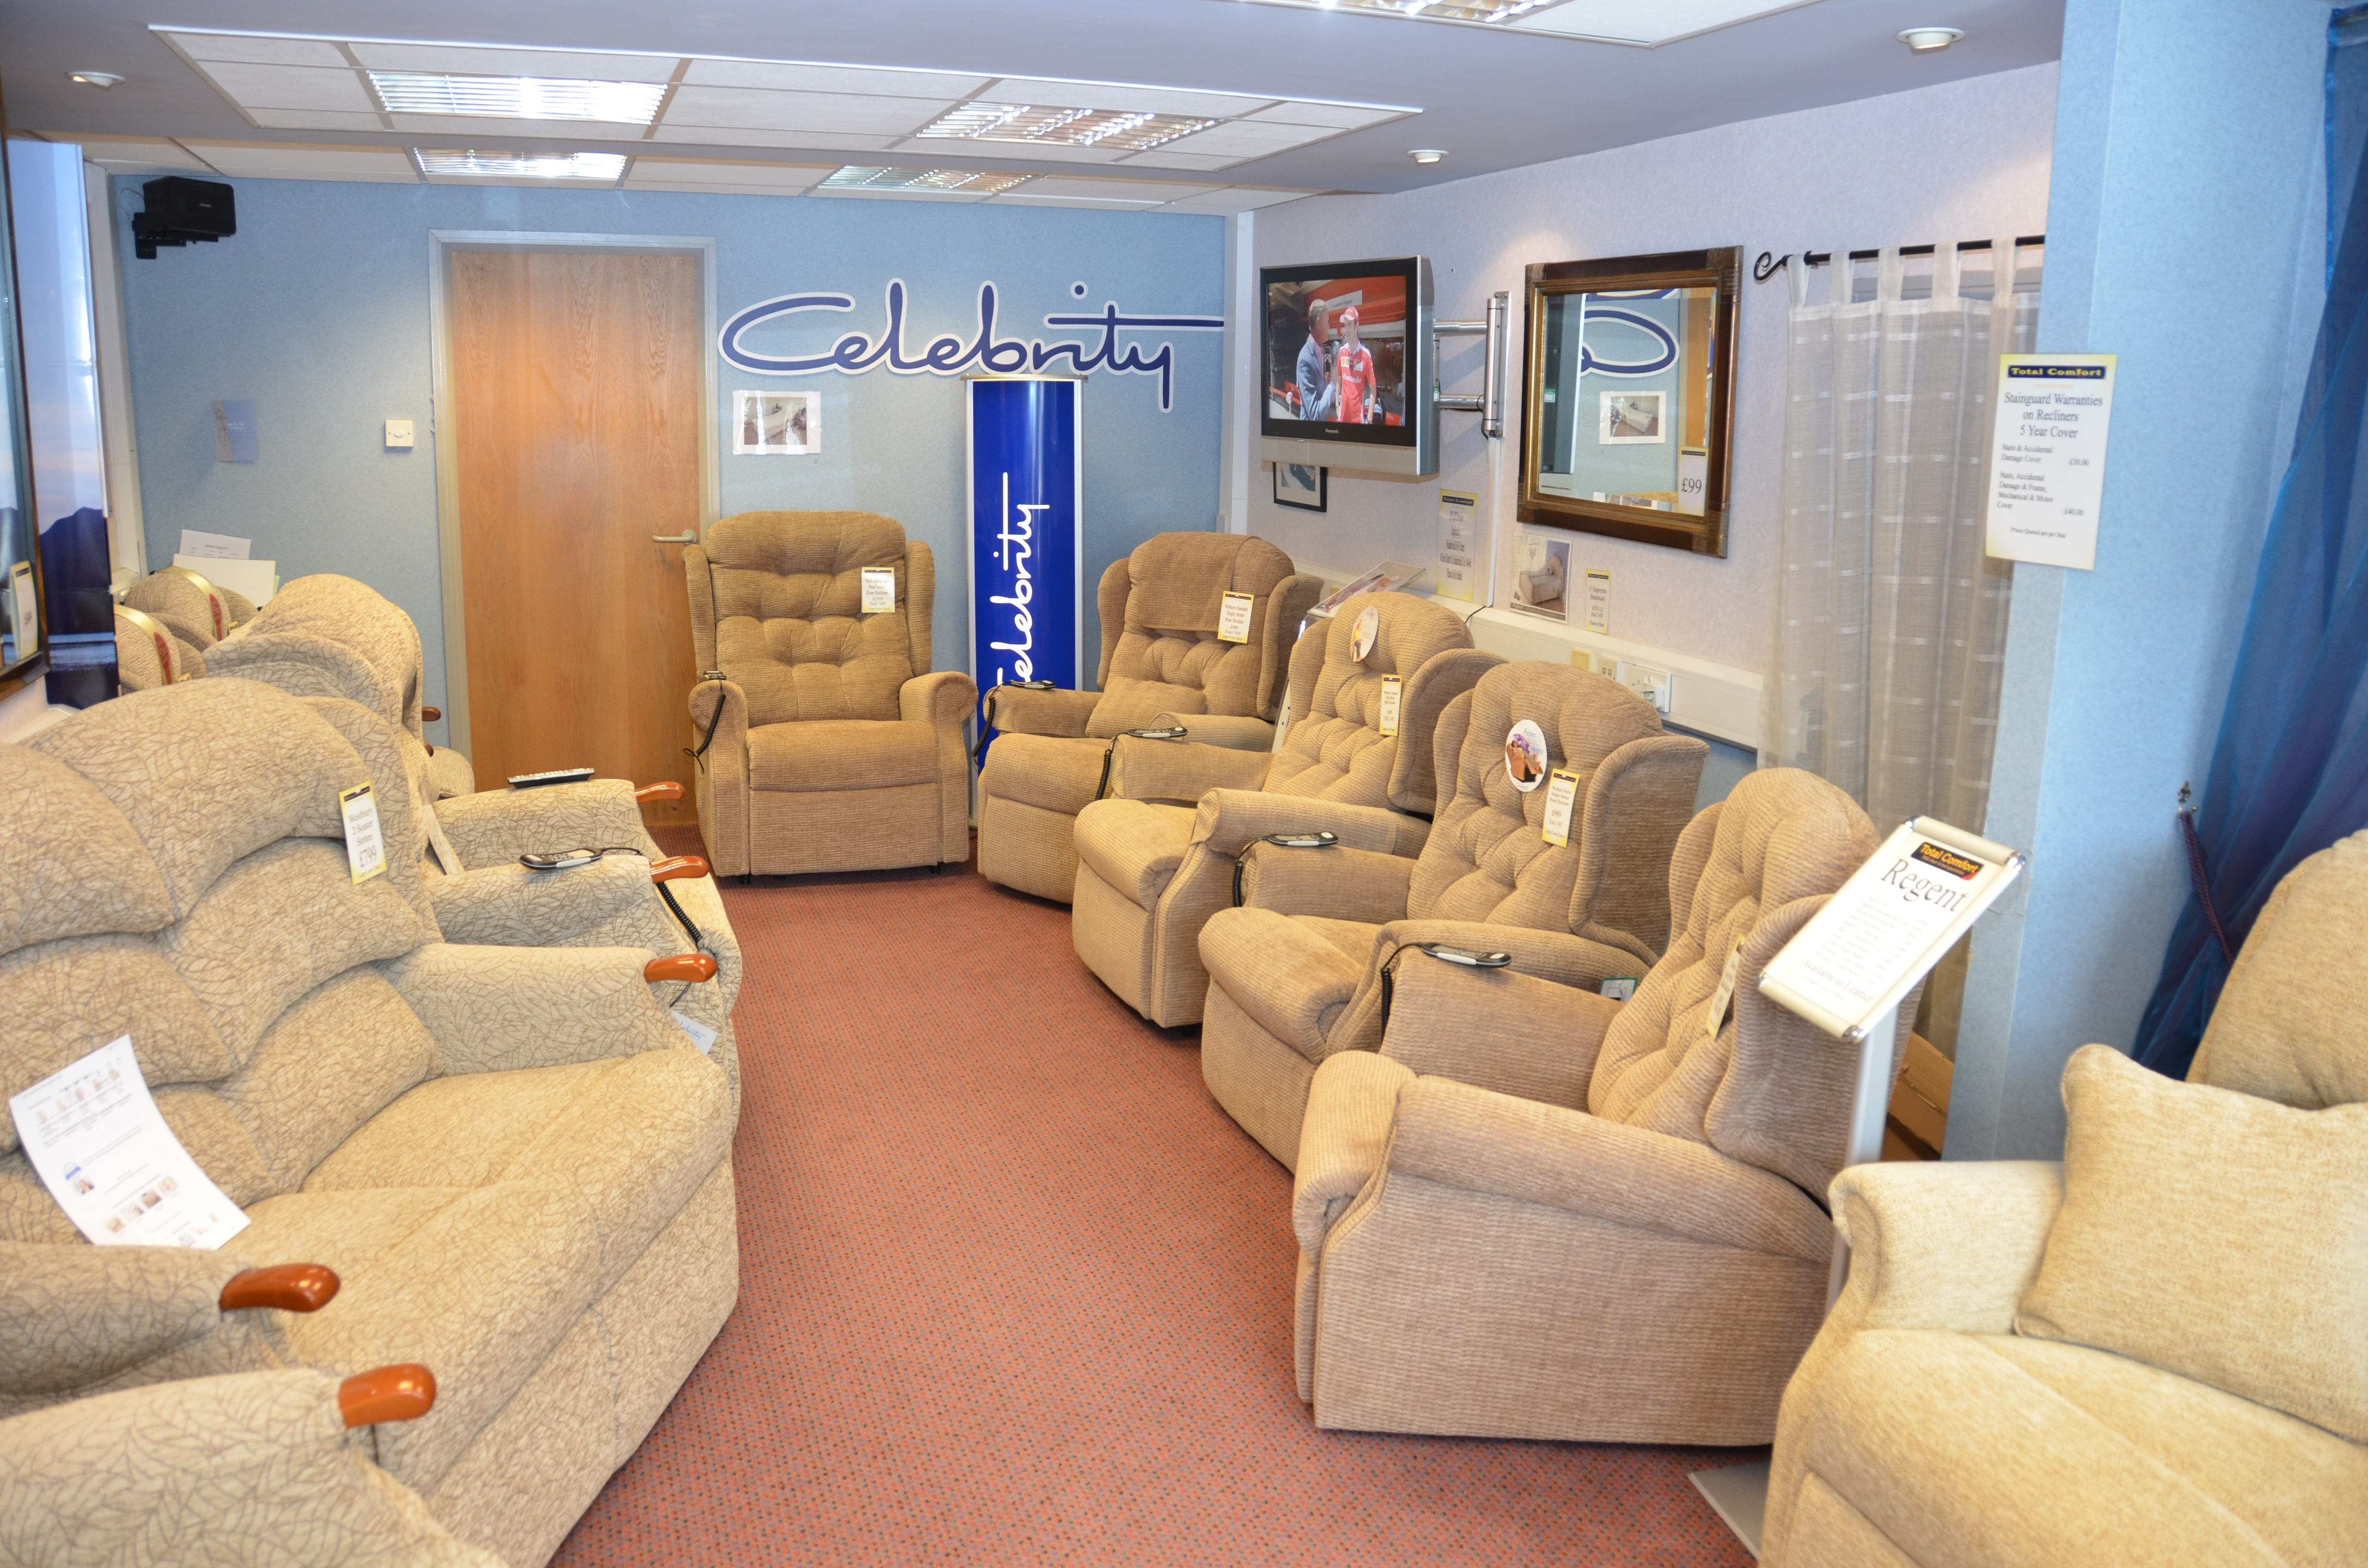 Total Comfort  Huddersfield Beds, Sofas, Recliners & Chair